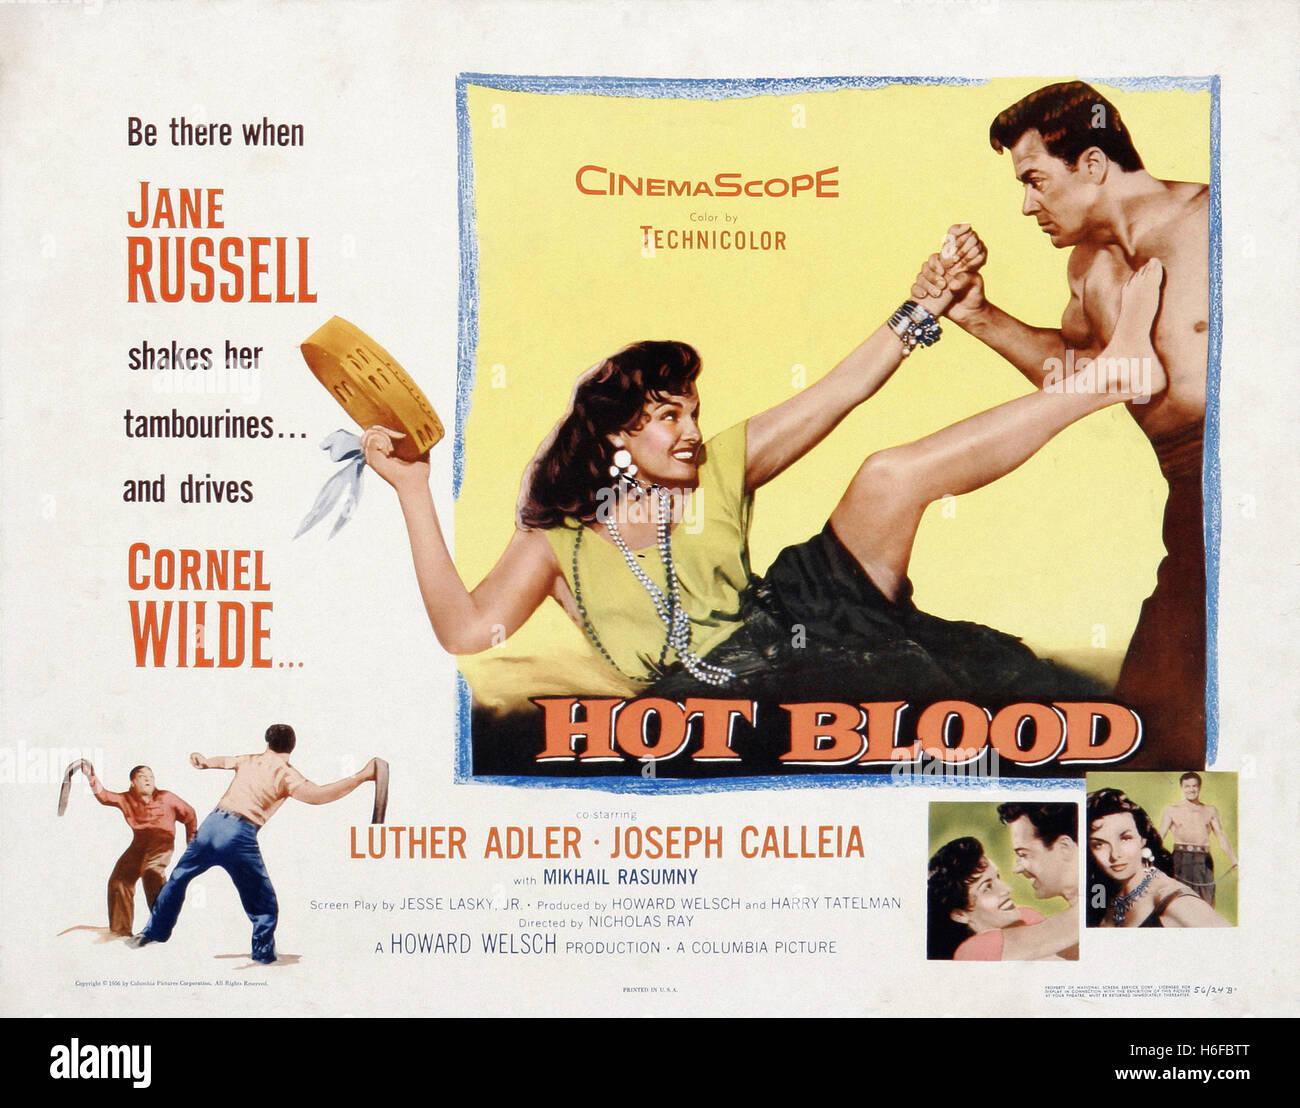 Hot Blood (1956) - Movie Poster - - Stock Image